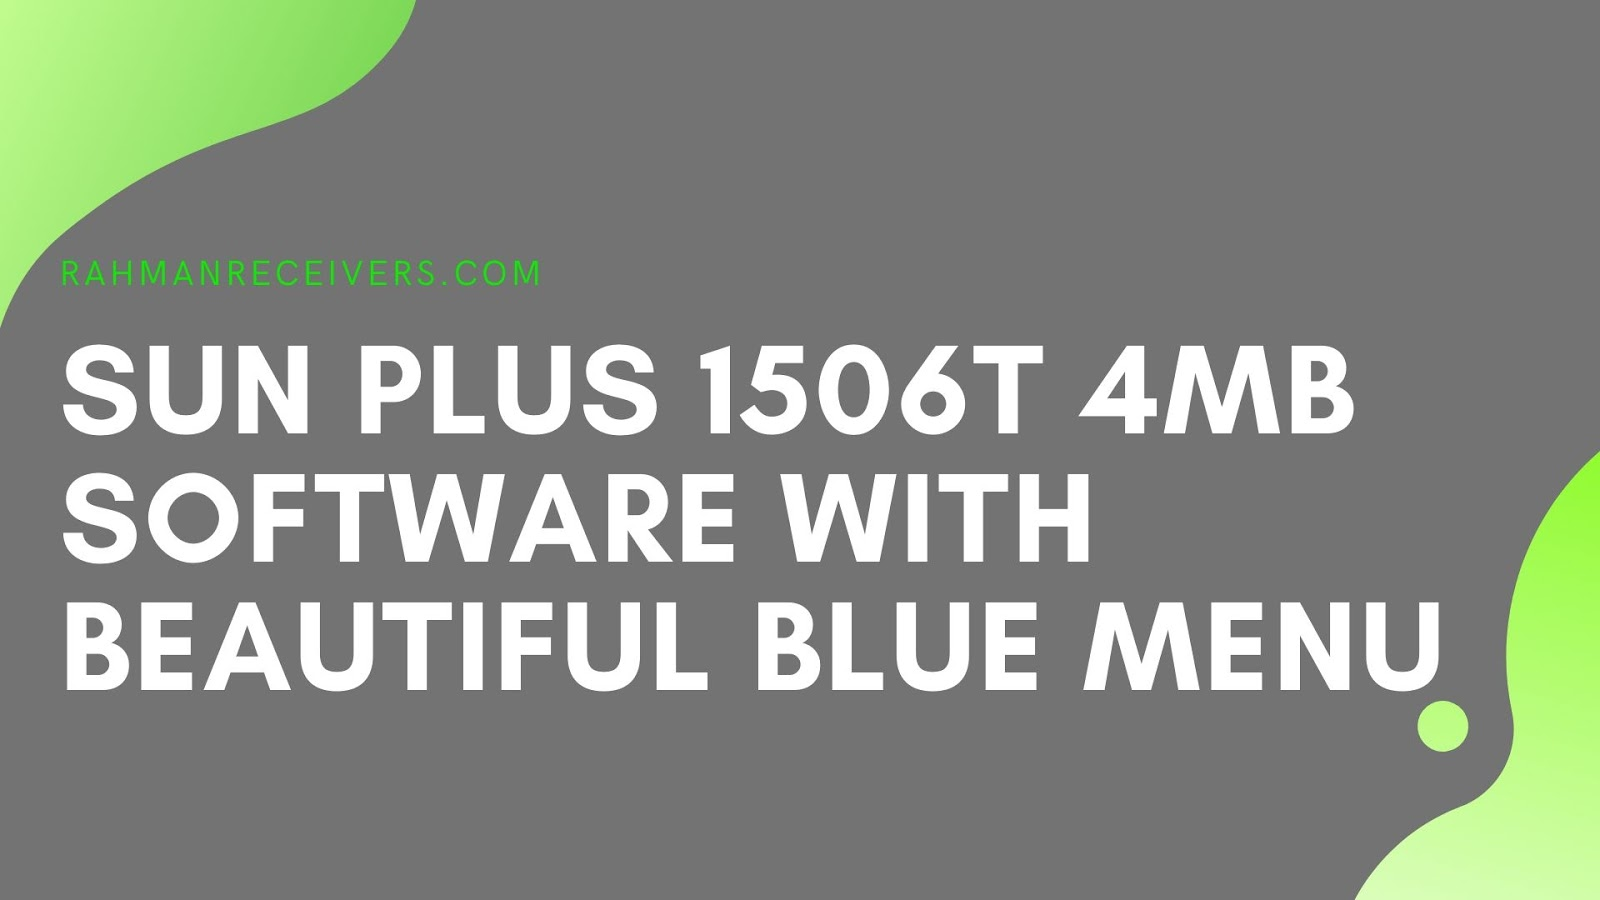 SUN PLUS 1506T 4MB SOFTWARE WITH BEAUTIFUL BLUE MENU